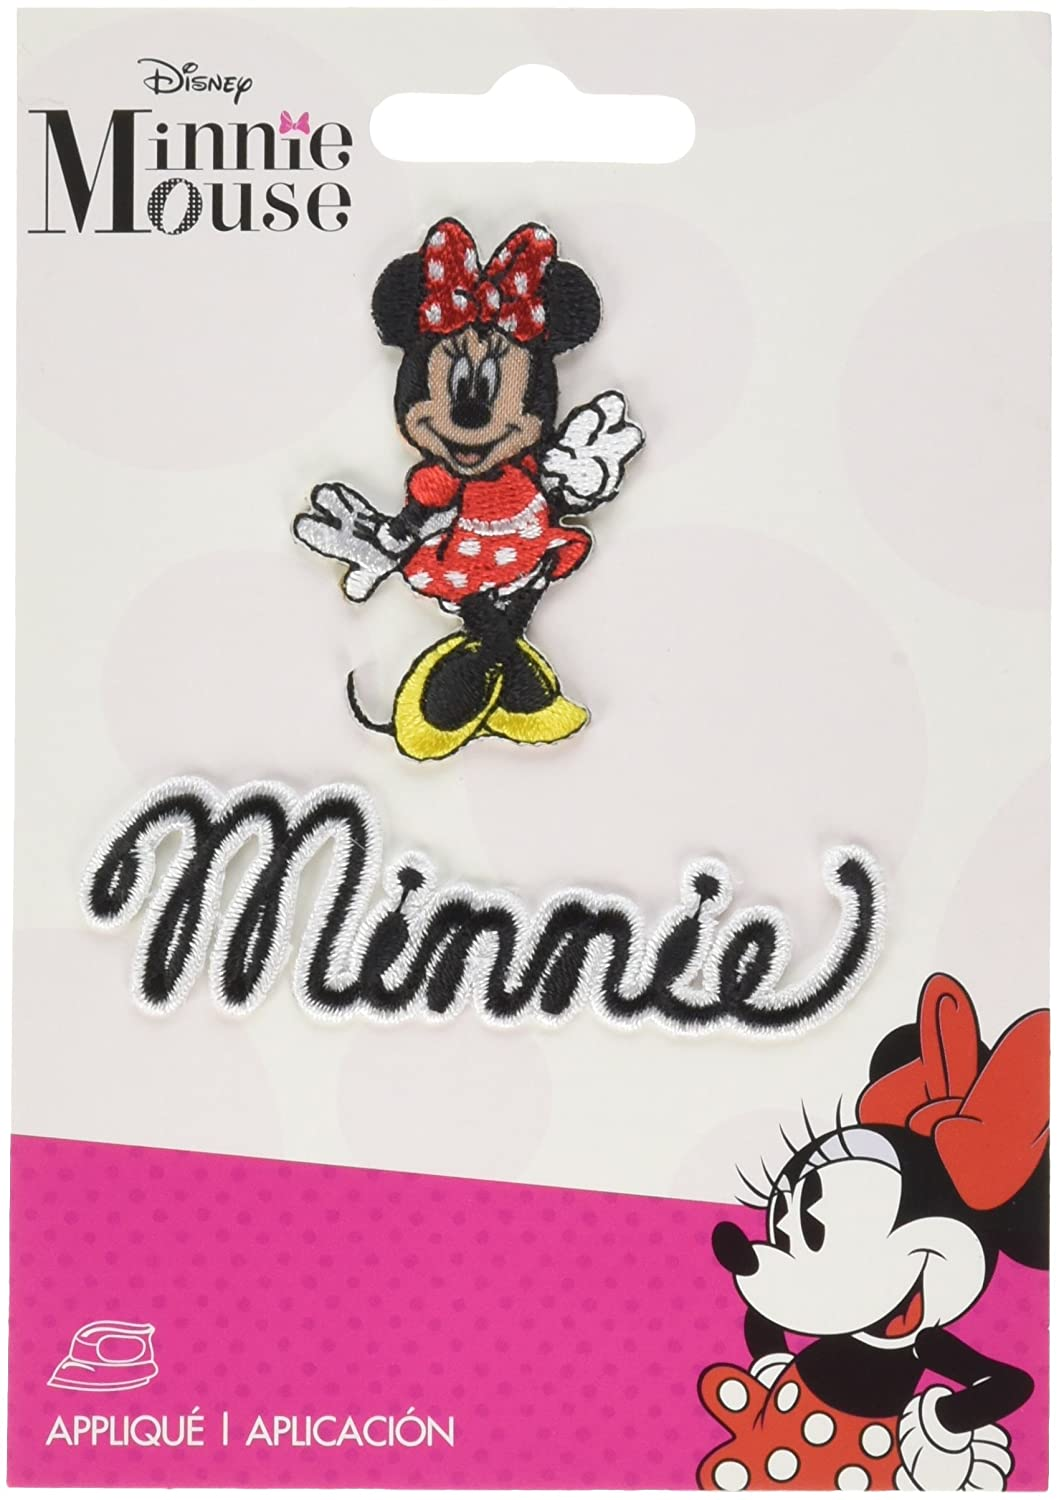 Wrights 19311550001 Disney Mickey Mouse Iron-On Applique-Minnie Mouse Body W//Script